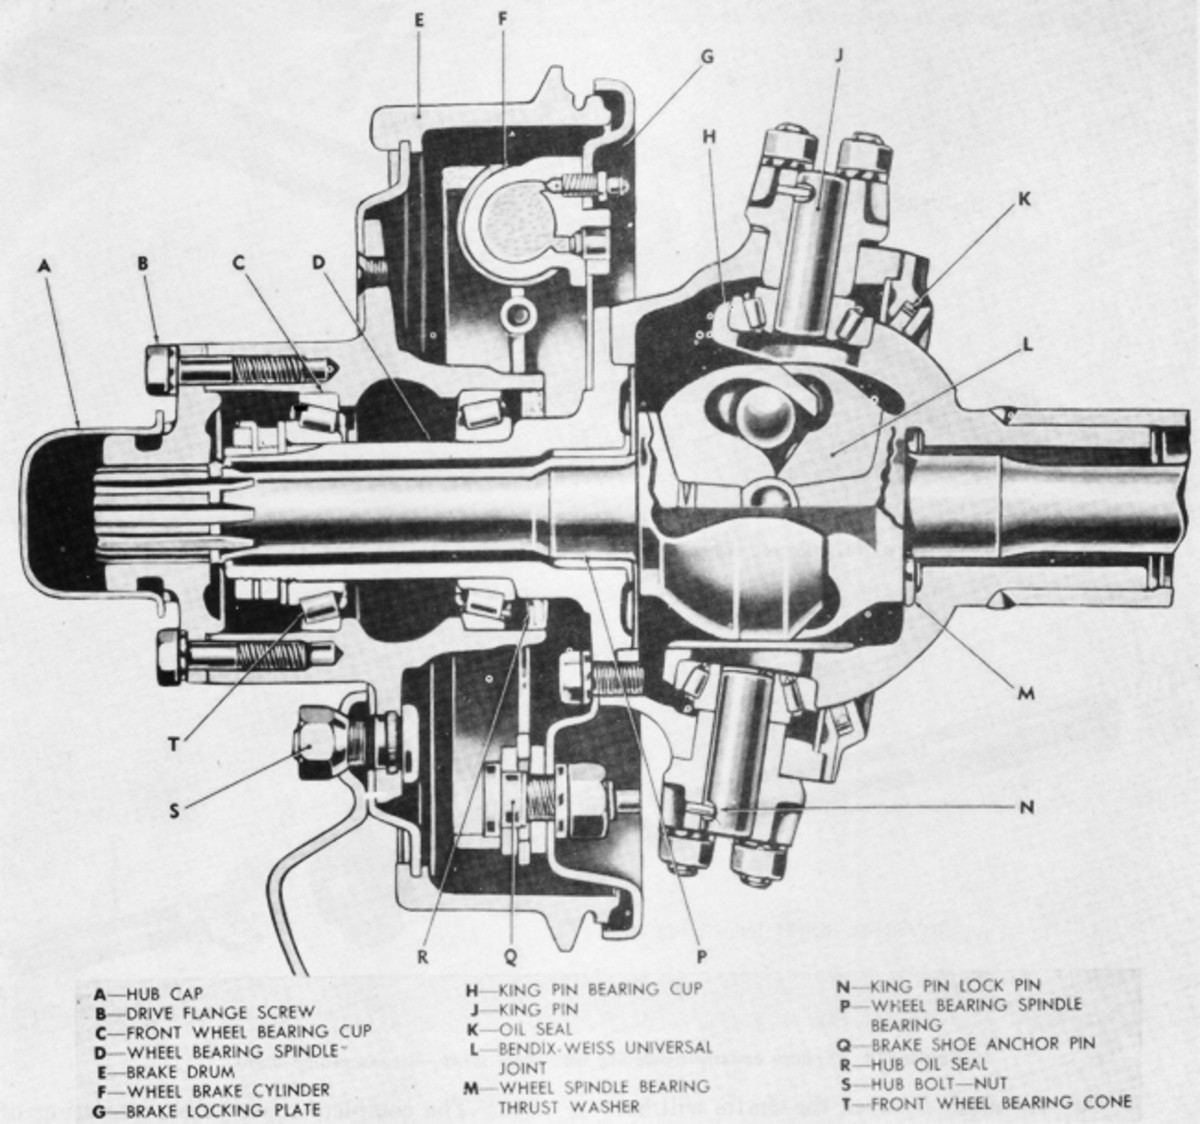 This is a typical jeep steering knuckle. While many larger HMVs have lube fittings top and bottom to lubricate their pivot bearings, many smaller vehicles don't. Instead, their steering pivot bearings – the upper bearings in particular – , are meant to be lubricated by the splash of oil from the rotating universal joint. If the vehicle has locking hubs and is used mostly with the hubs disengaged, the upper bearing doesn't get oiled. If this is the case with your HMV, you should lock the hubs and drive a few miles every week so the steering knuckle U-joints rotate and splash the oil around.